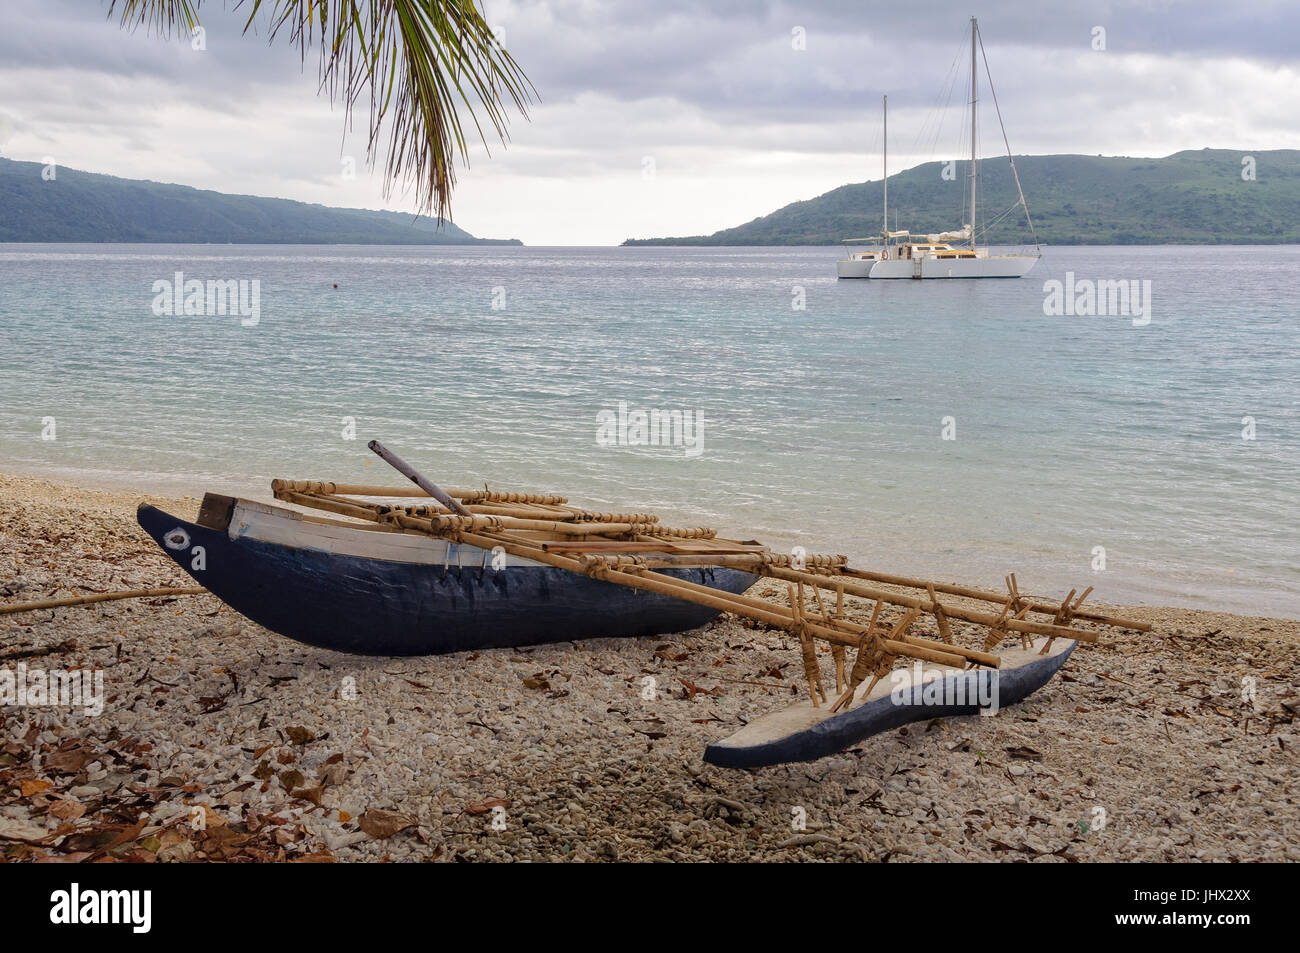 A typical outrigger canoe on Efate Island, Vanuatu - Stock Image